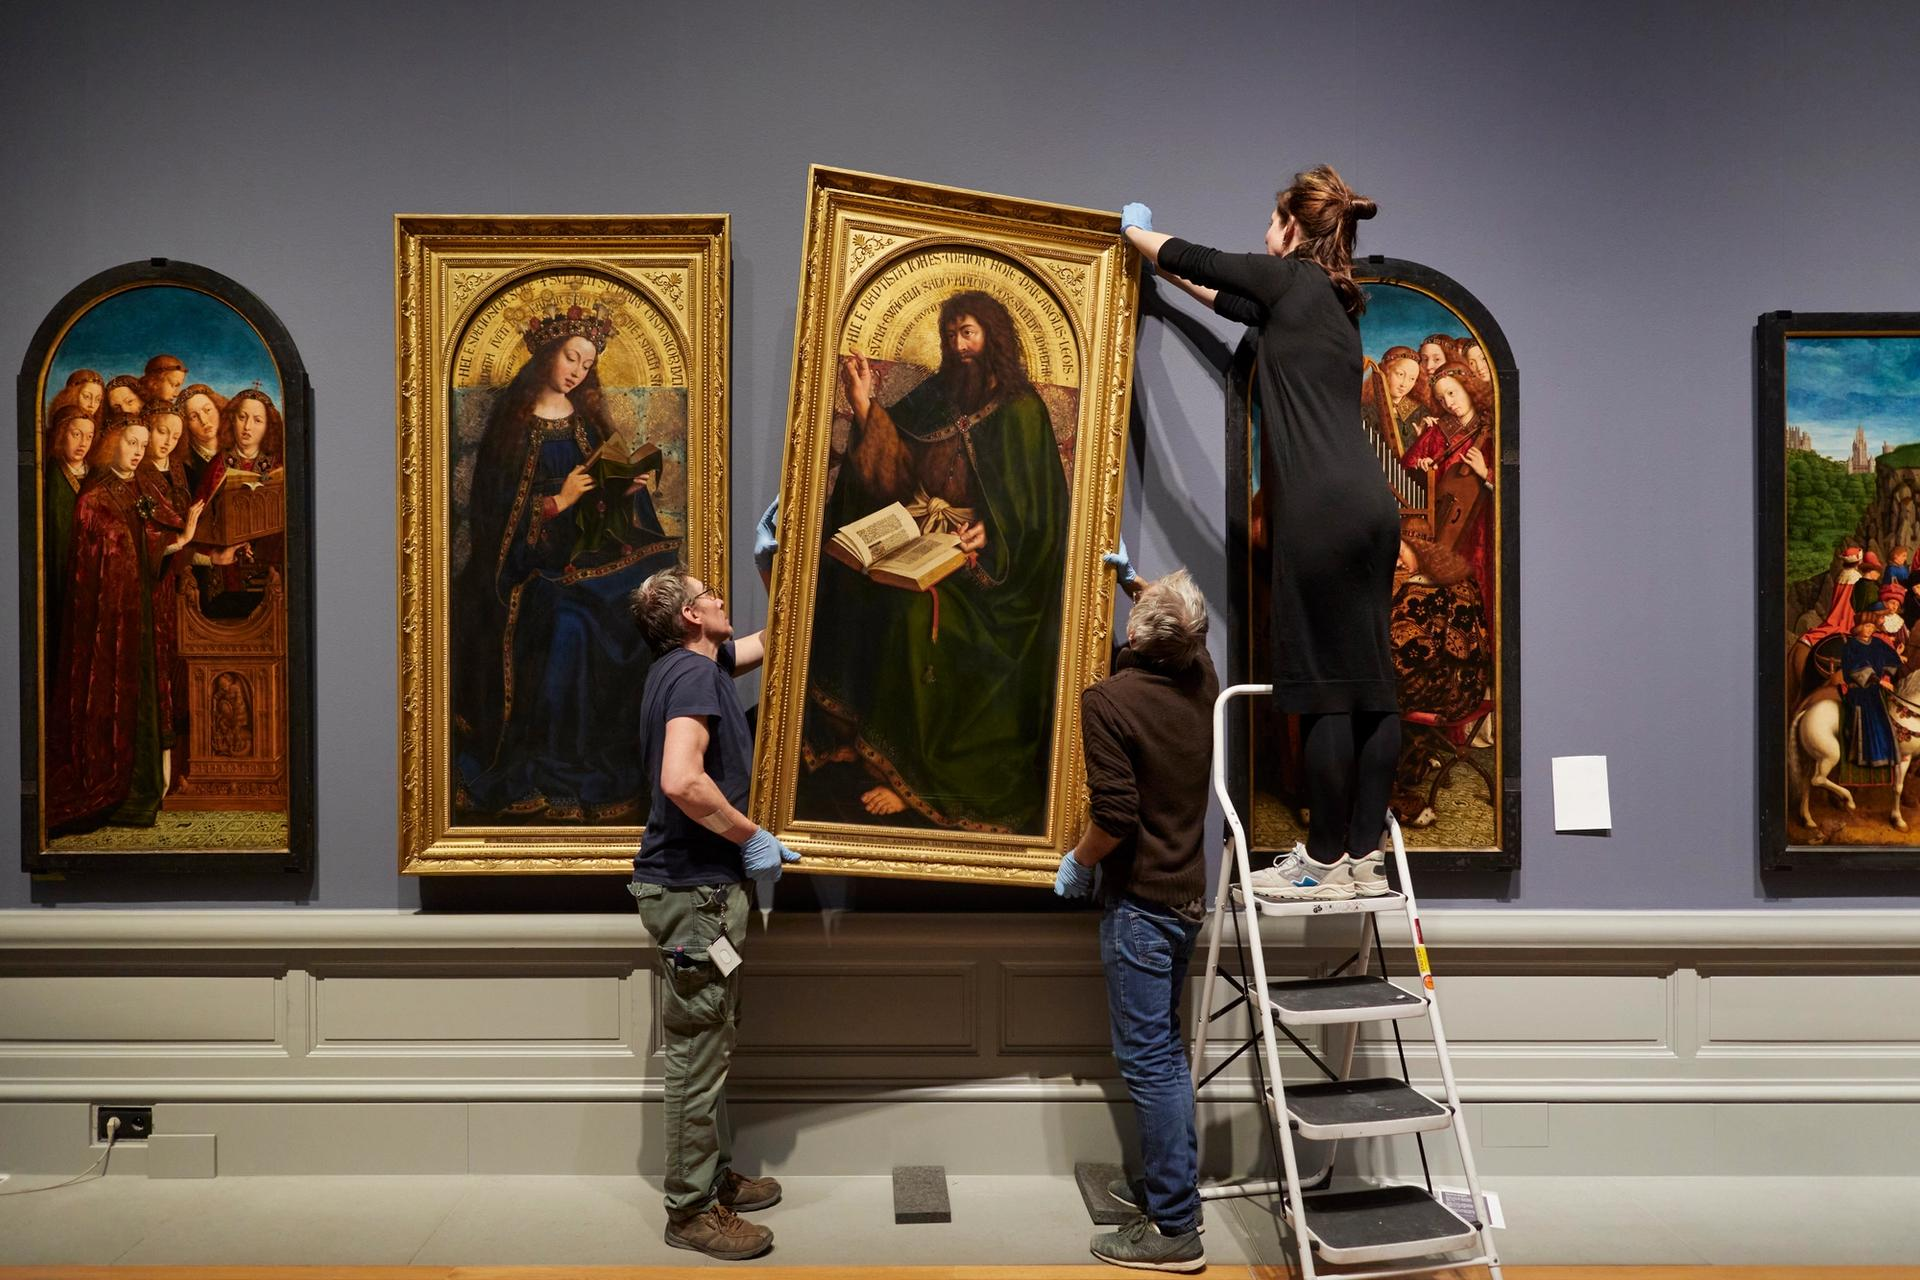 The exhibition Van Eyck: an Optical Revolution was on display in the Museum of Fine Arts Ghent © MSK Ghent. Photo: David Levene